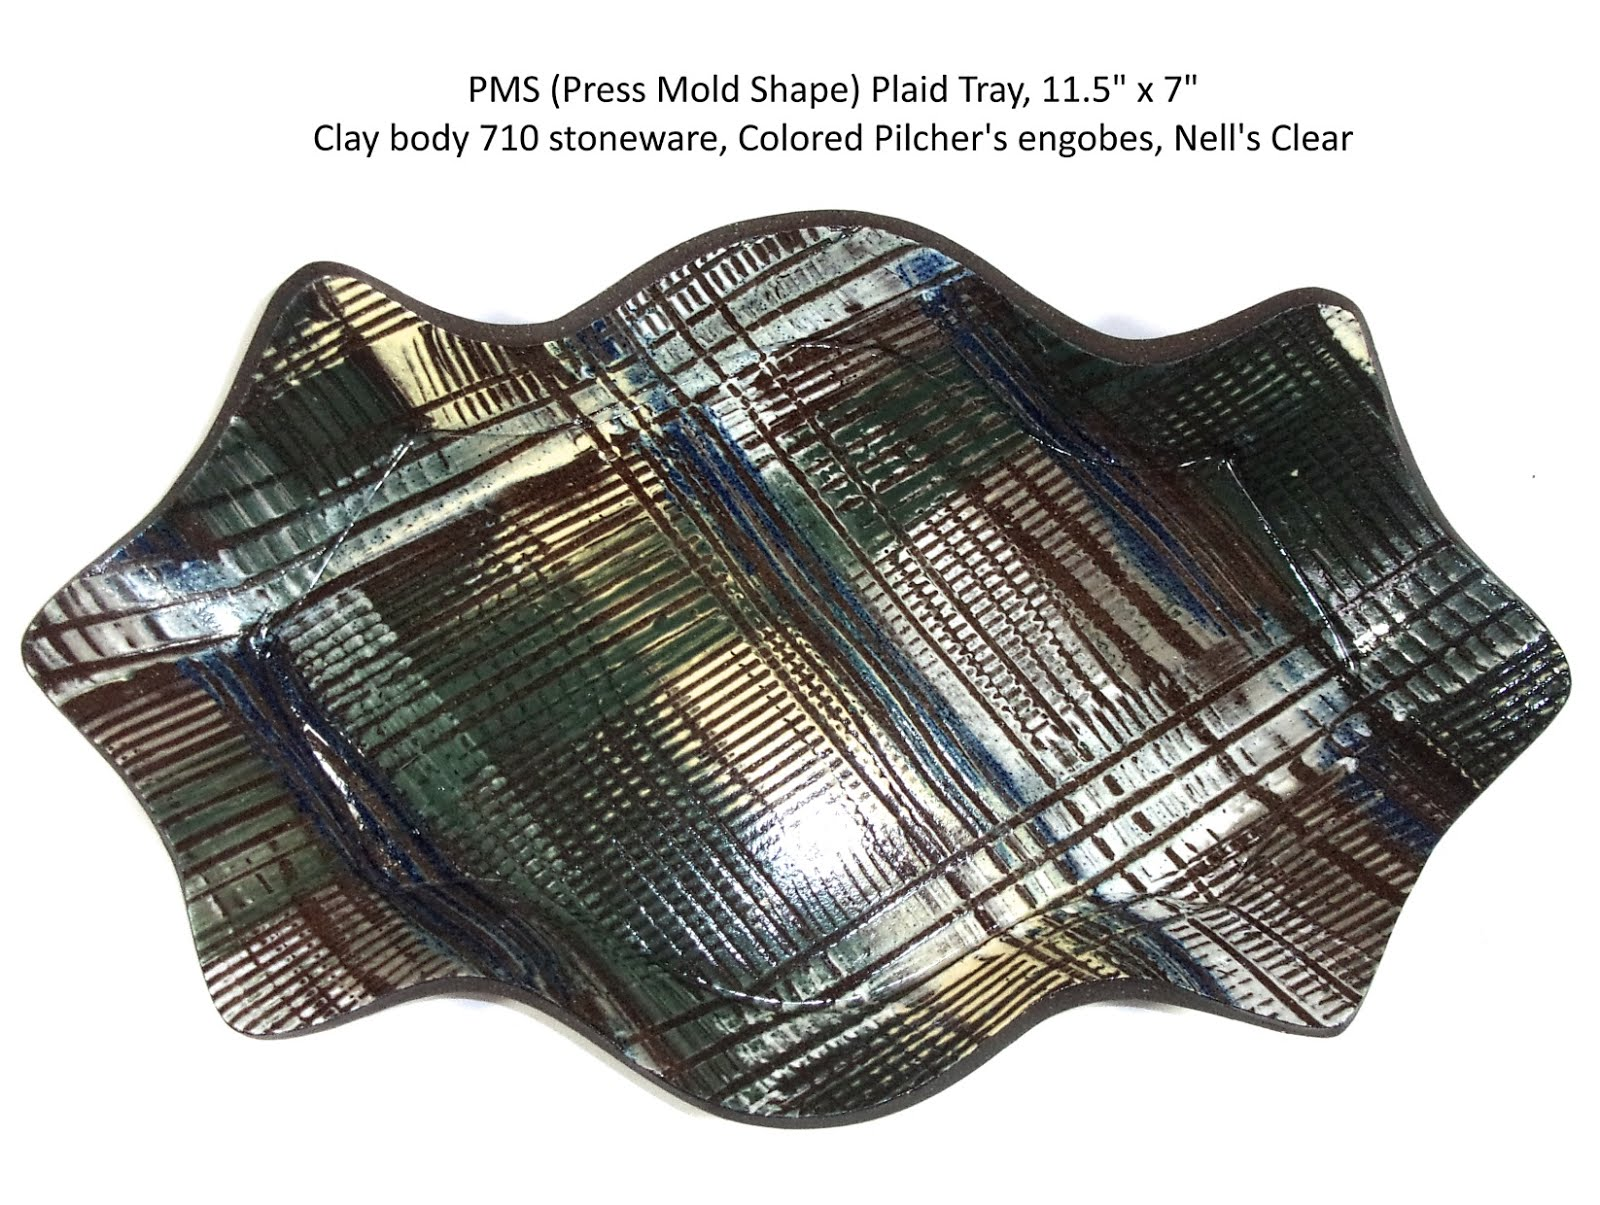 The Plaid Ceramic Tray